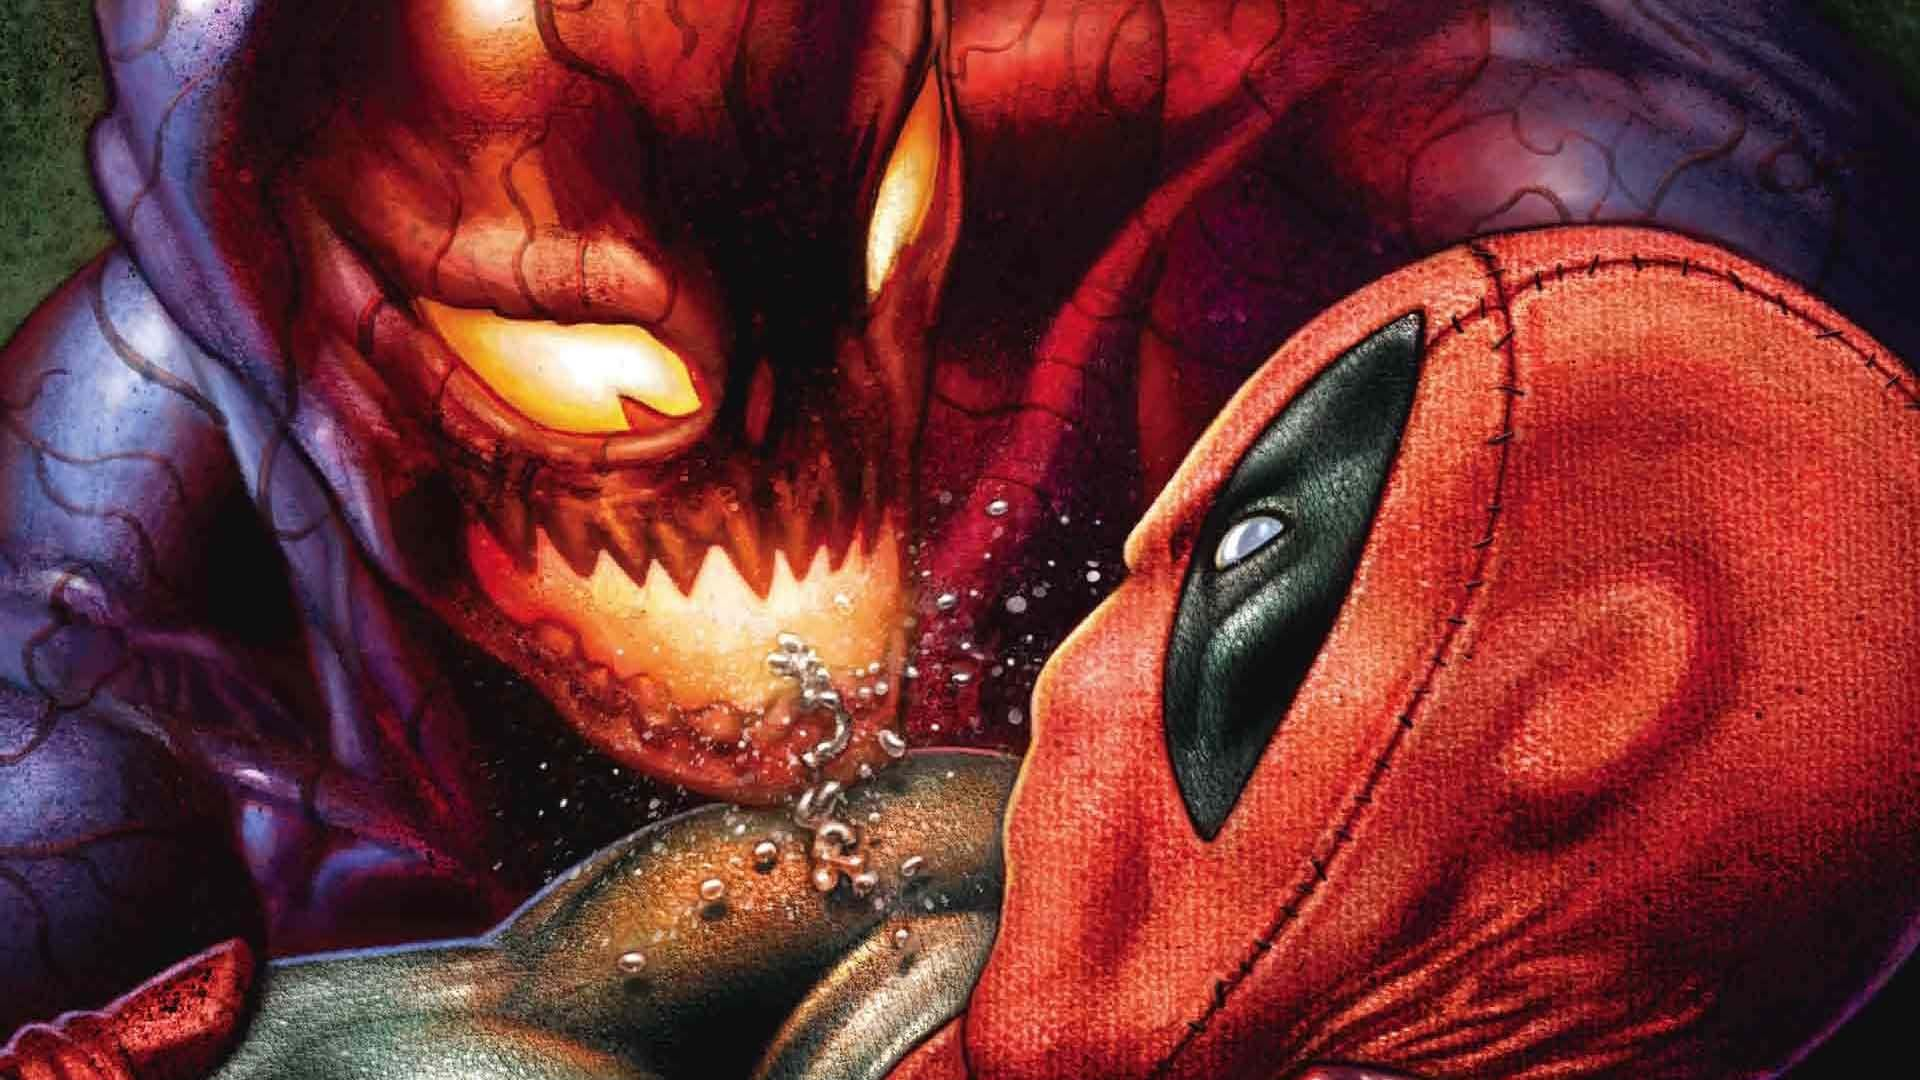 Carnage Deadpool Wallpapers Top Free Carnage Deadpool Backgrounds